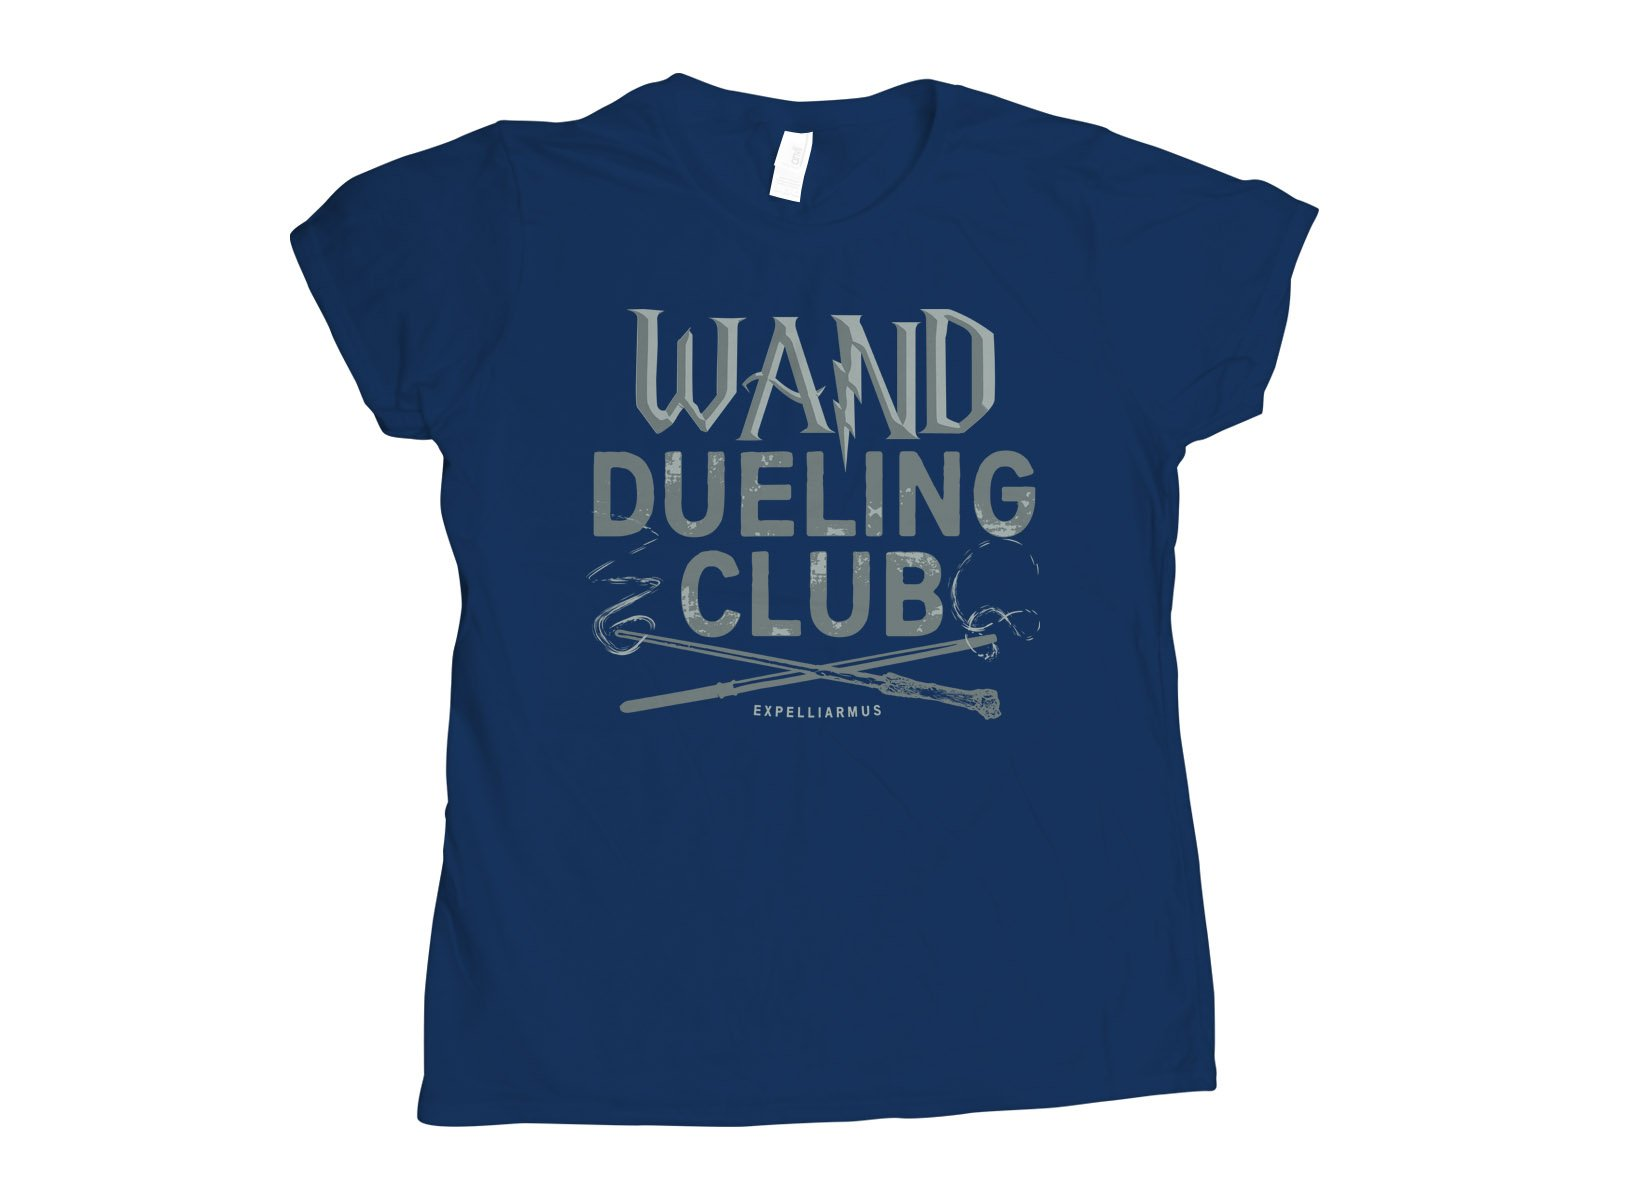 Wand Dueling Club on Womens T-Shirt